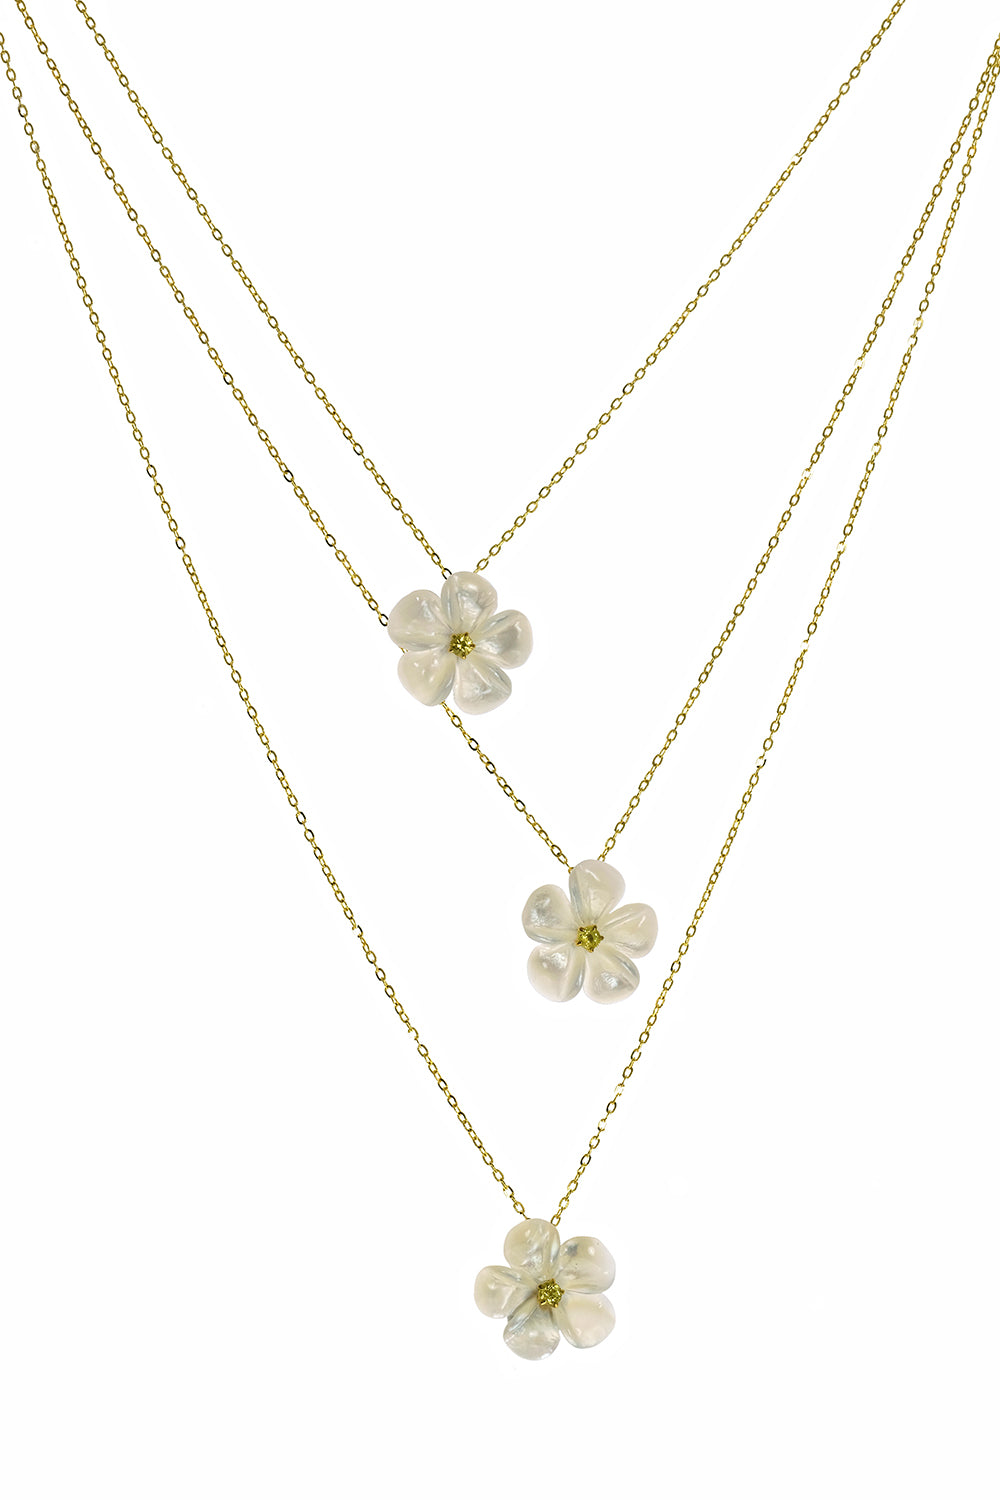 Mother of Pearl Kalachuchi Necklace, Small, with Yellow Sapphire and Chain (available in yellow, white, and rose gold)